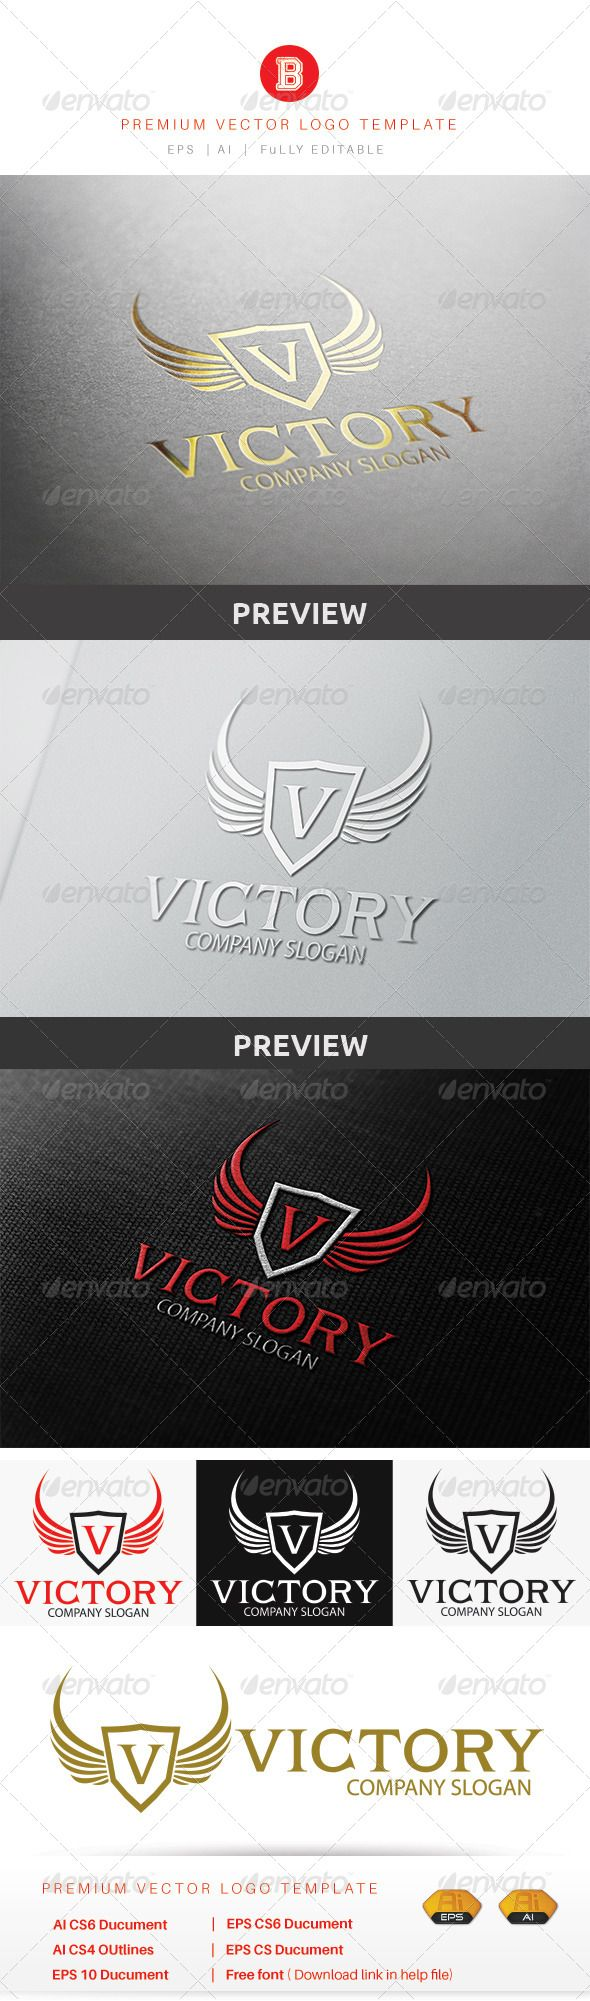 Victory Logo — Vector EPS #gold #fast • Available here → https://graphicriver.net/item/victory-logo/8615556?ref=pxcr